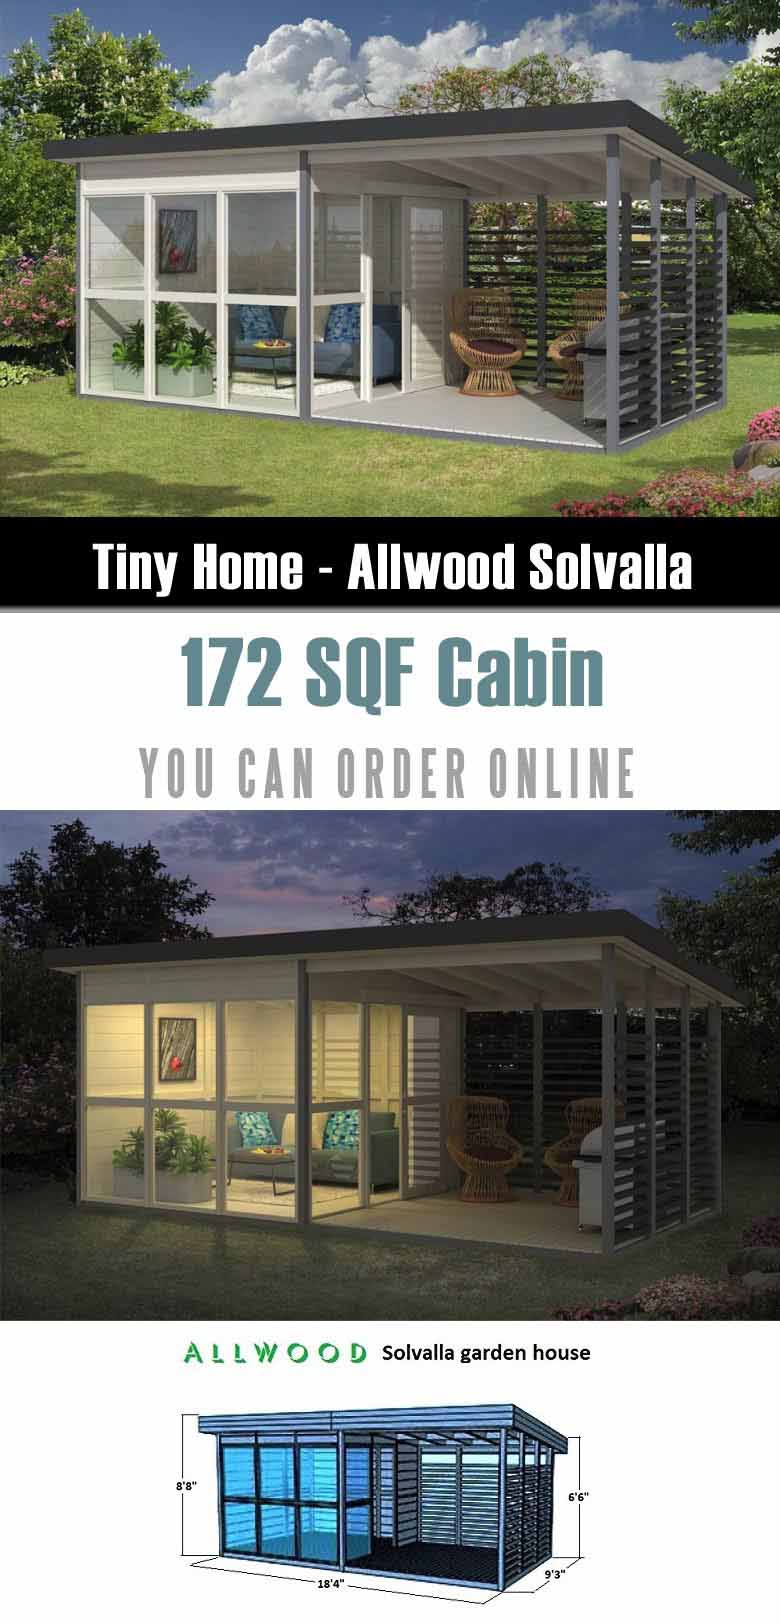 This is on of prefab tiny houses that you can order from Amazon.